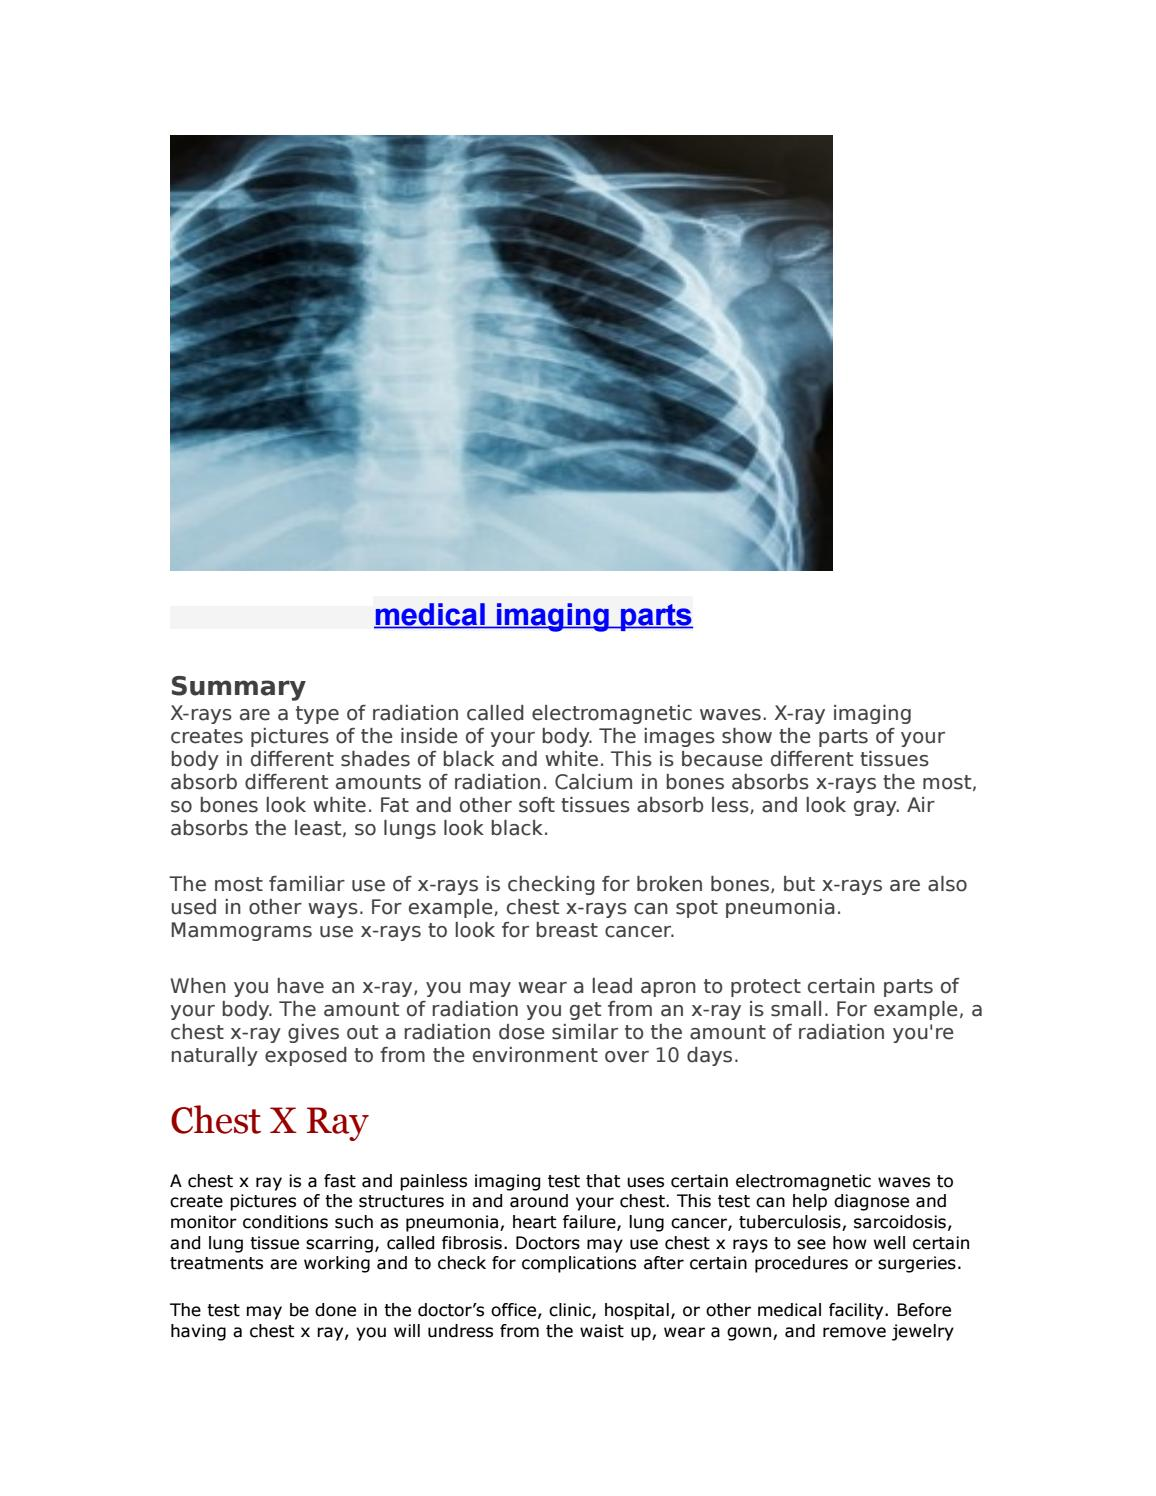 Medical parts imaging by artuhin26 - issuu